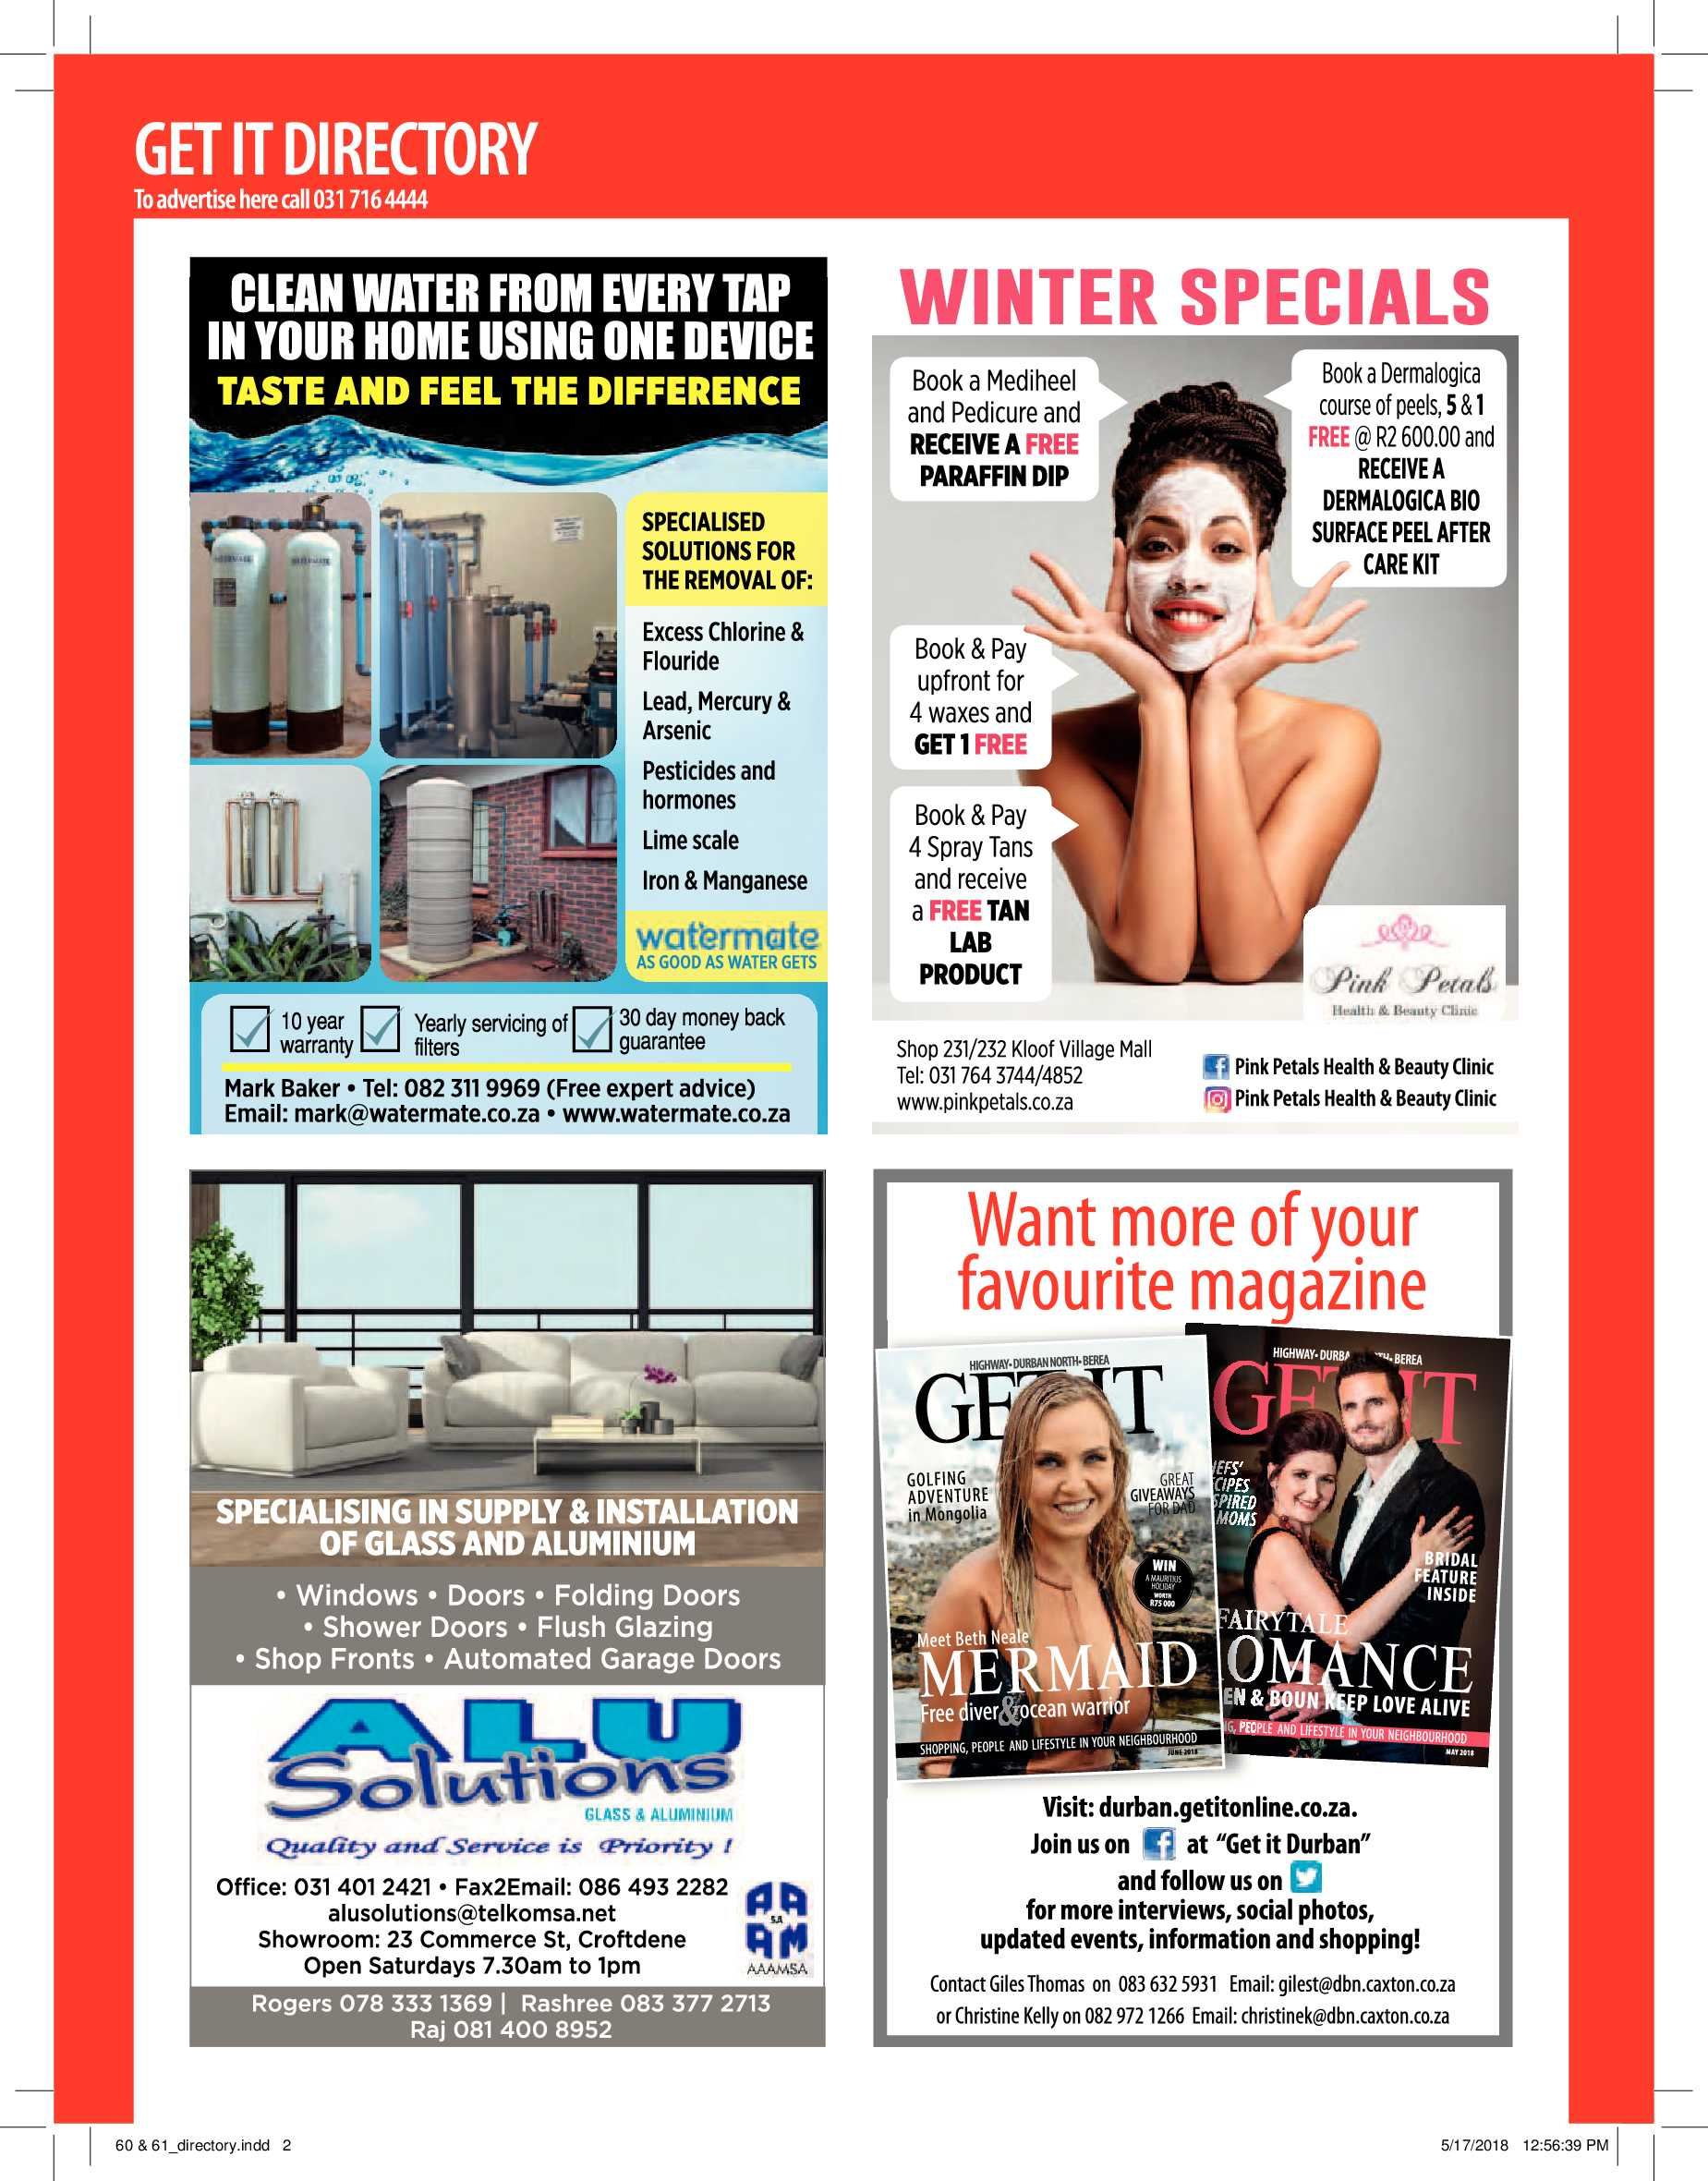 get-magazine-durban-june-2018-epapers-page-62